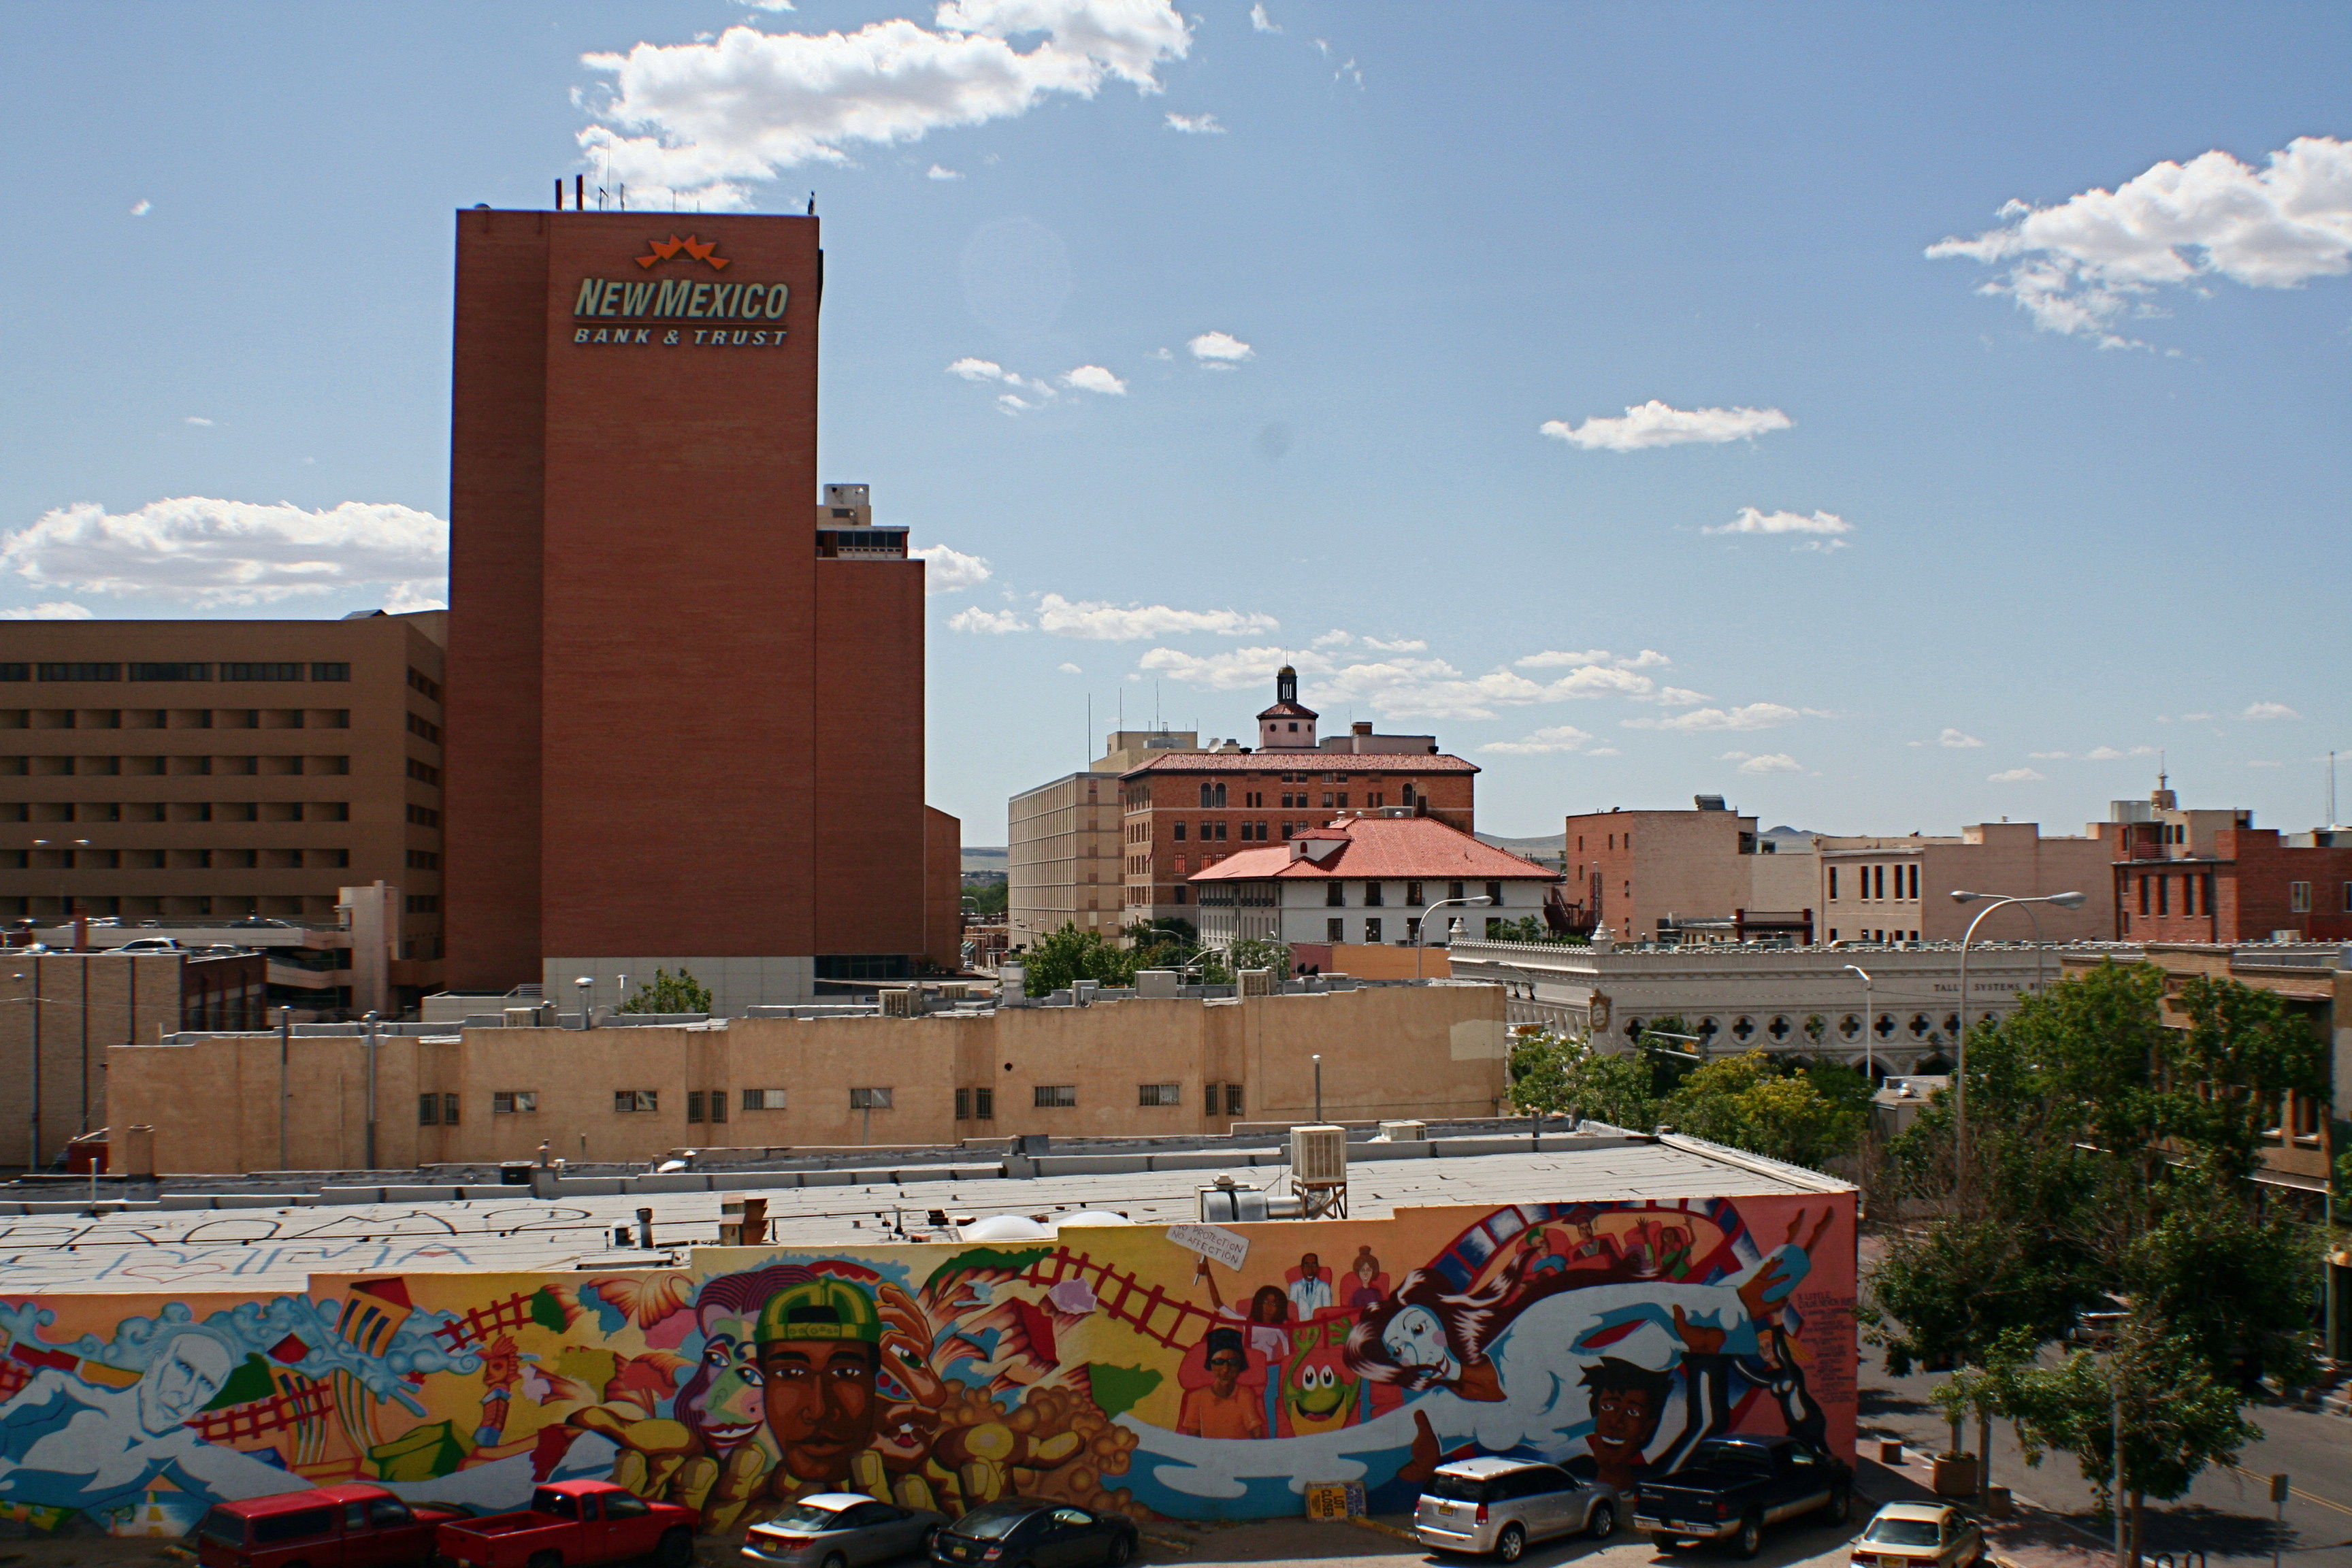 File:Downtown Albuquerque, New Mexico.JPG - Wikimedia Commons